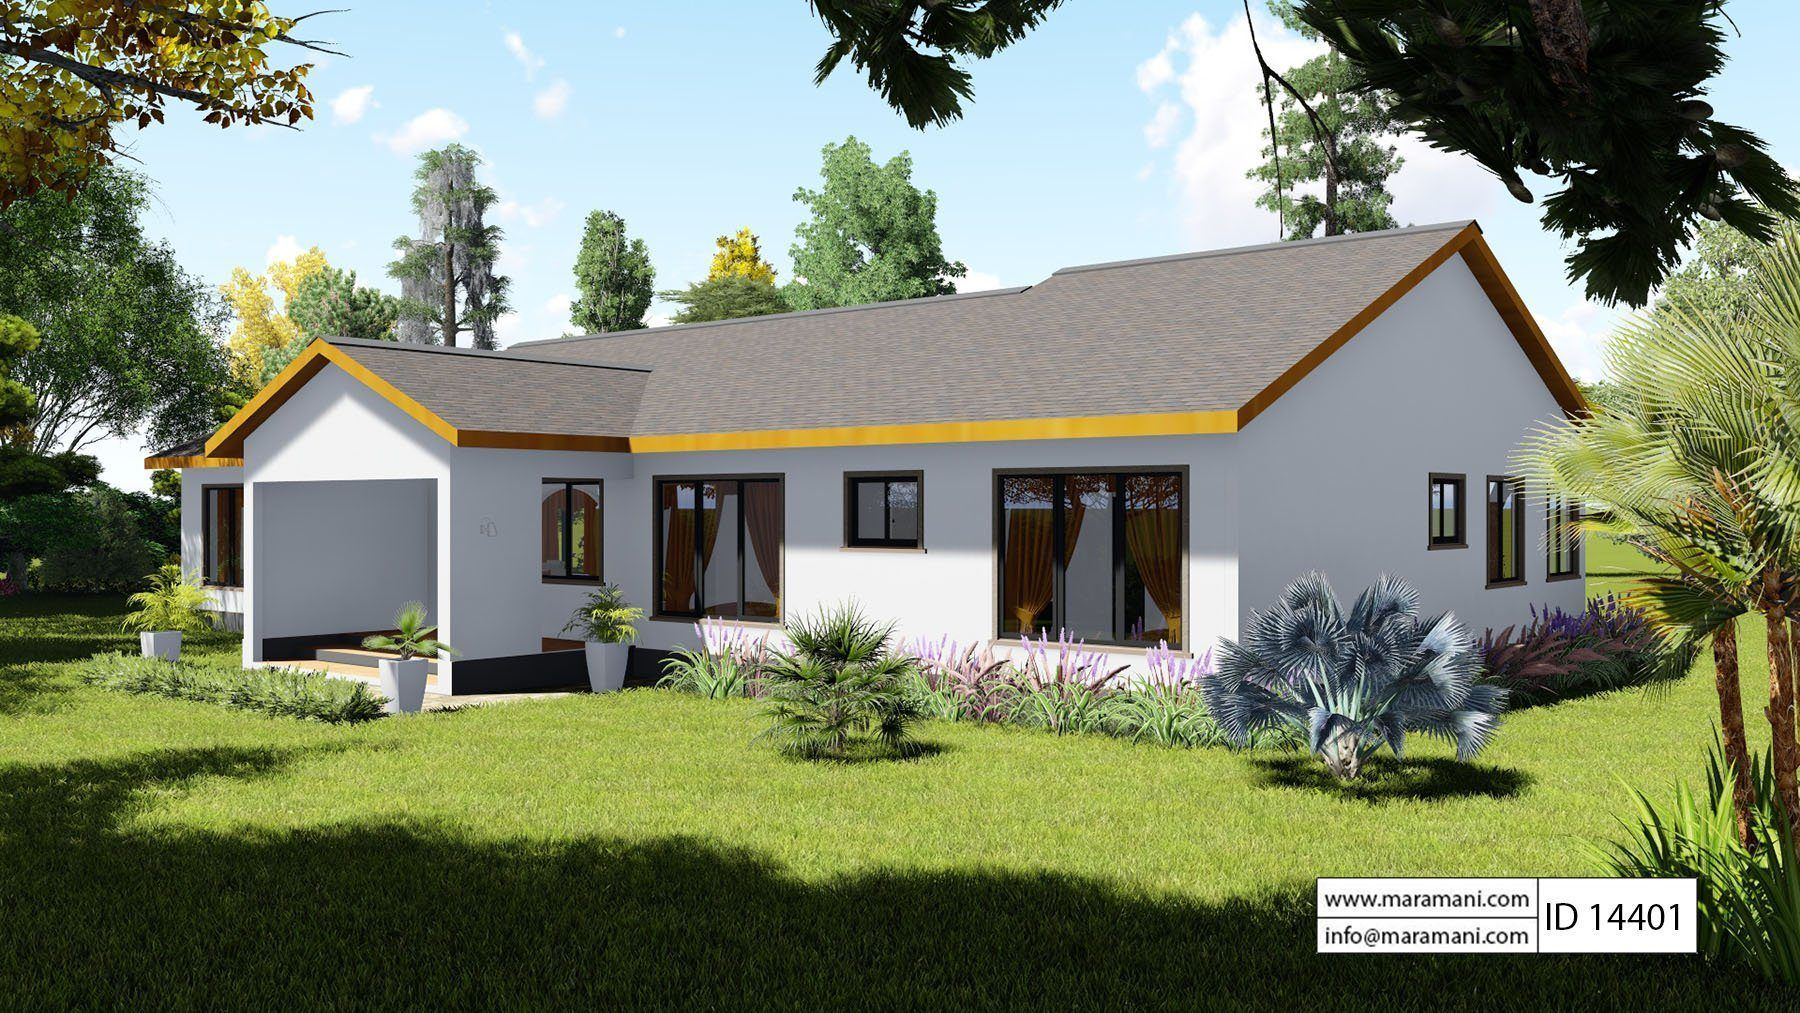 4 Bedroom Countryside House Id 14401 House Plans By Maramani Countryside House Diy Tiny House Plans House Plans